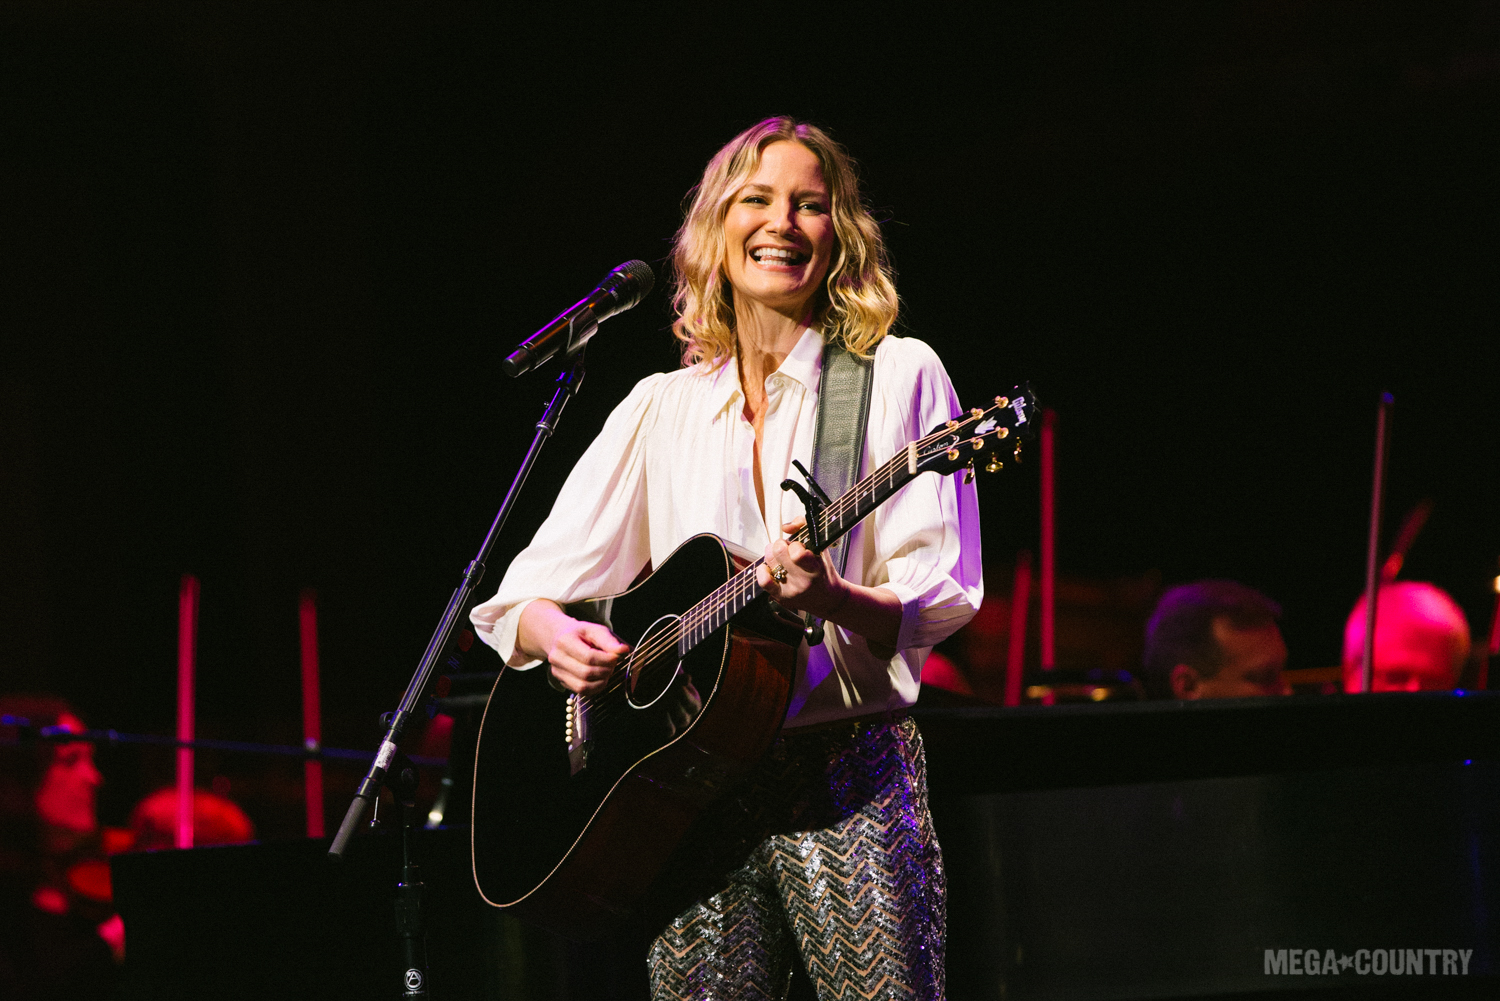 Jennifer Nettles Performs on Live Music Series... | News | MegaCountry